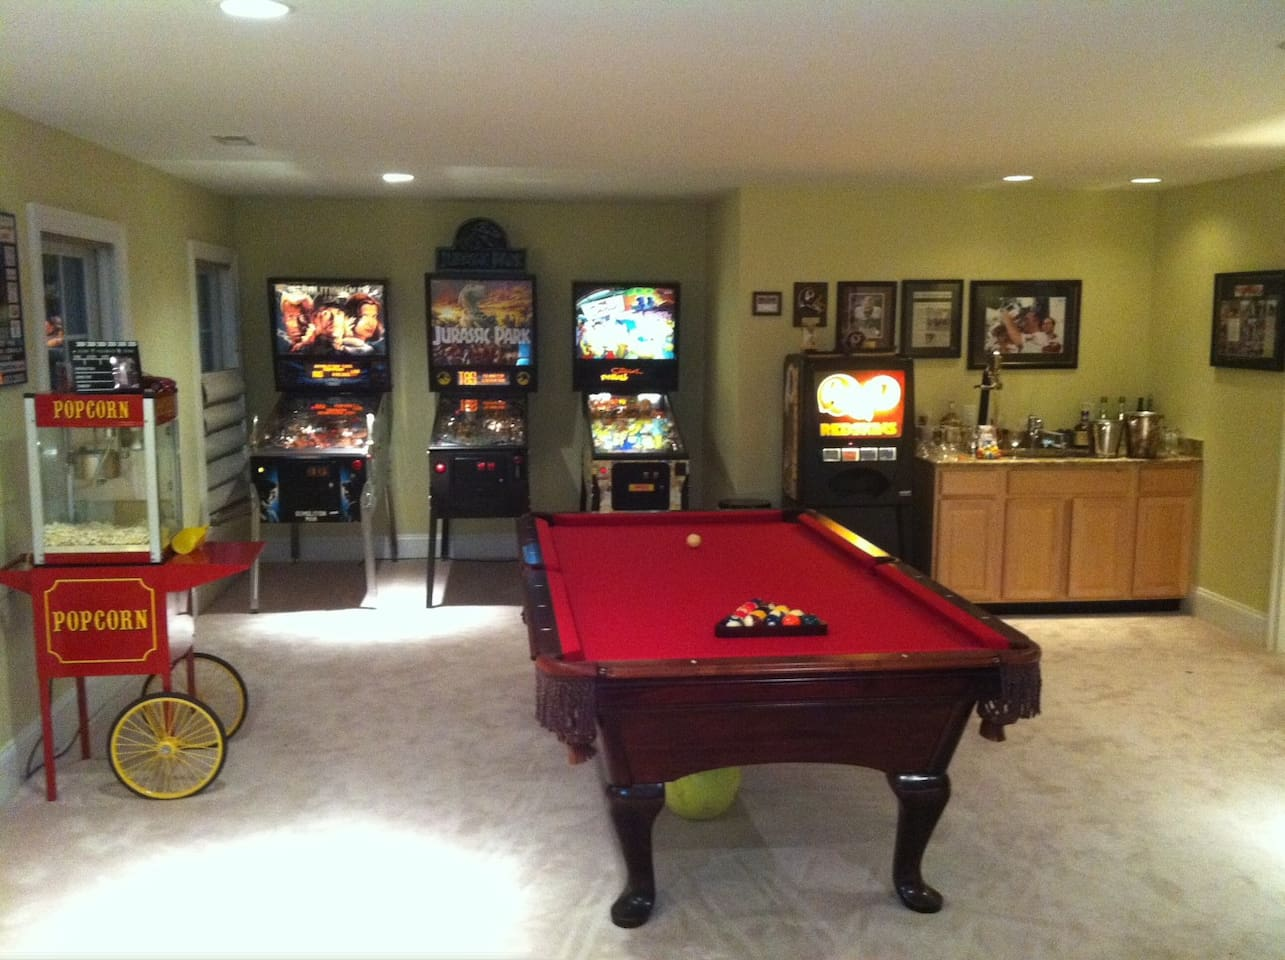 Located down stairs our Entertainment room is AWESOME! Popcorn Machine is self explanatory. Pinballs are complimentary and require no money.  Play pool, watch TV or Dance the night away.  We also have a fun disco party light & rockin sound system!